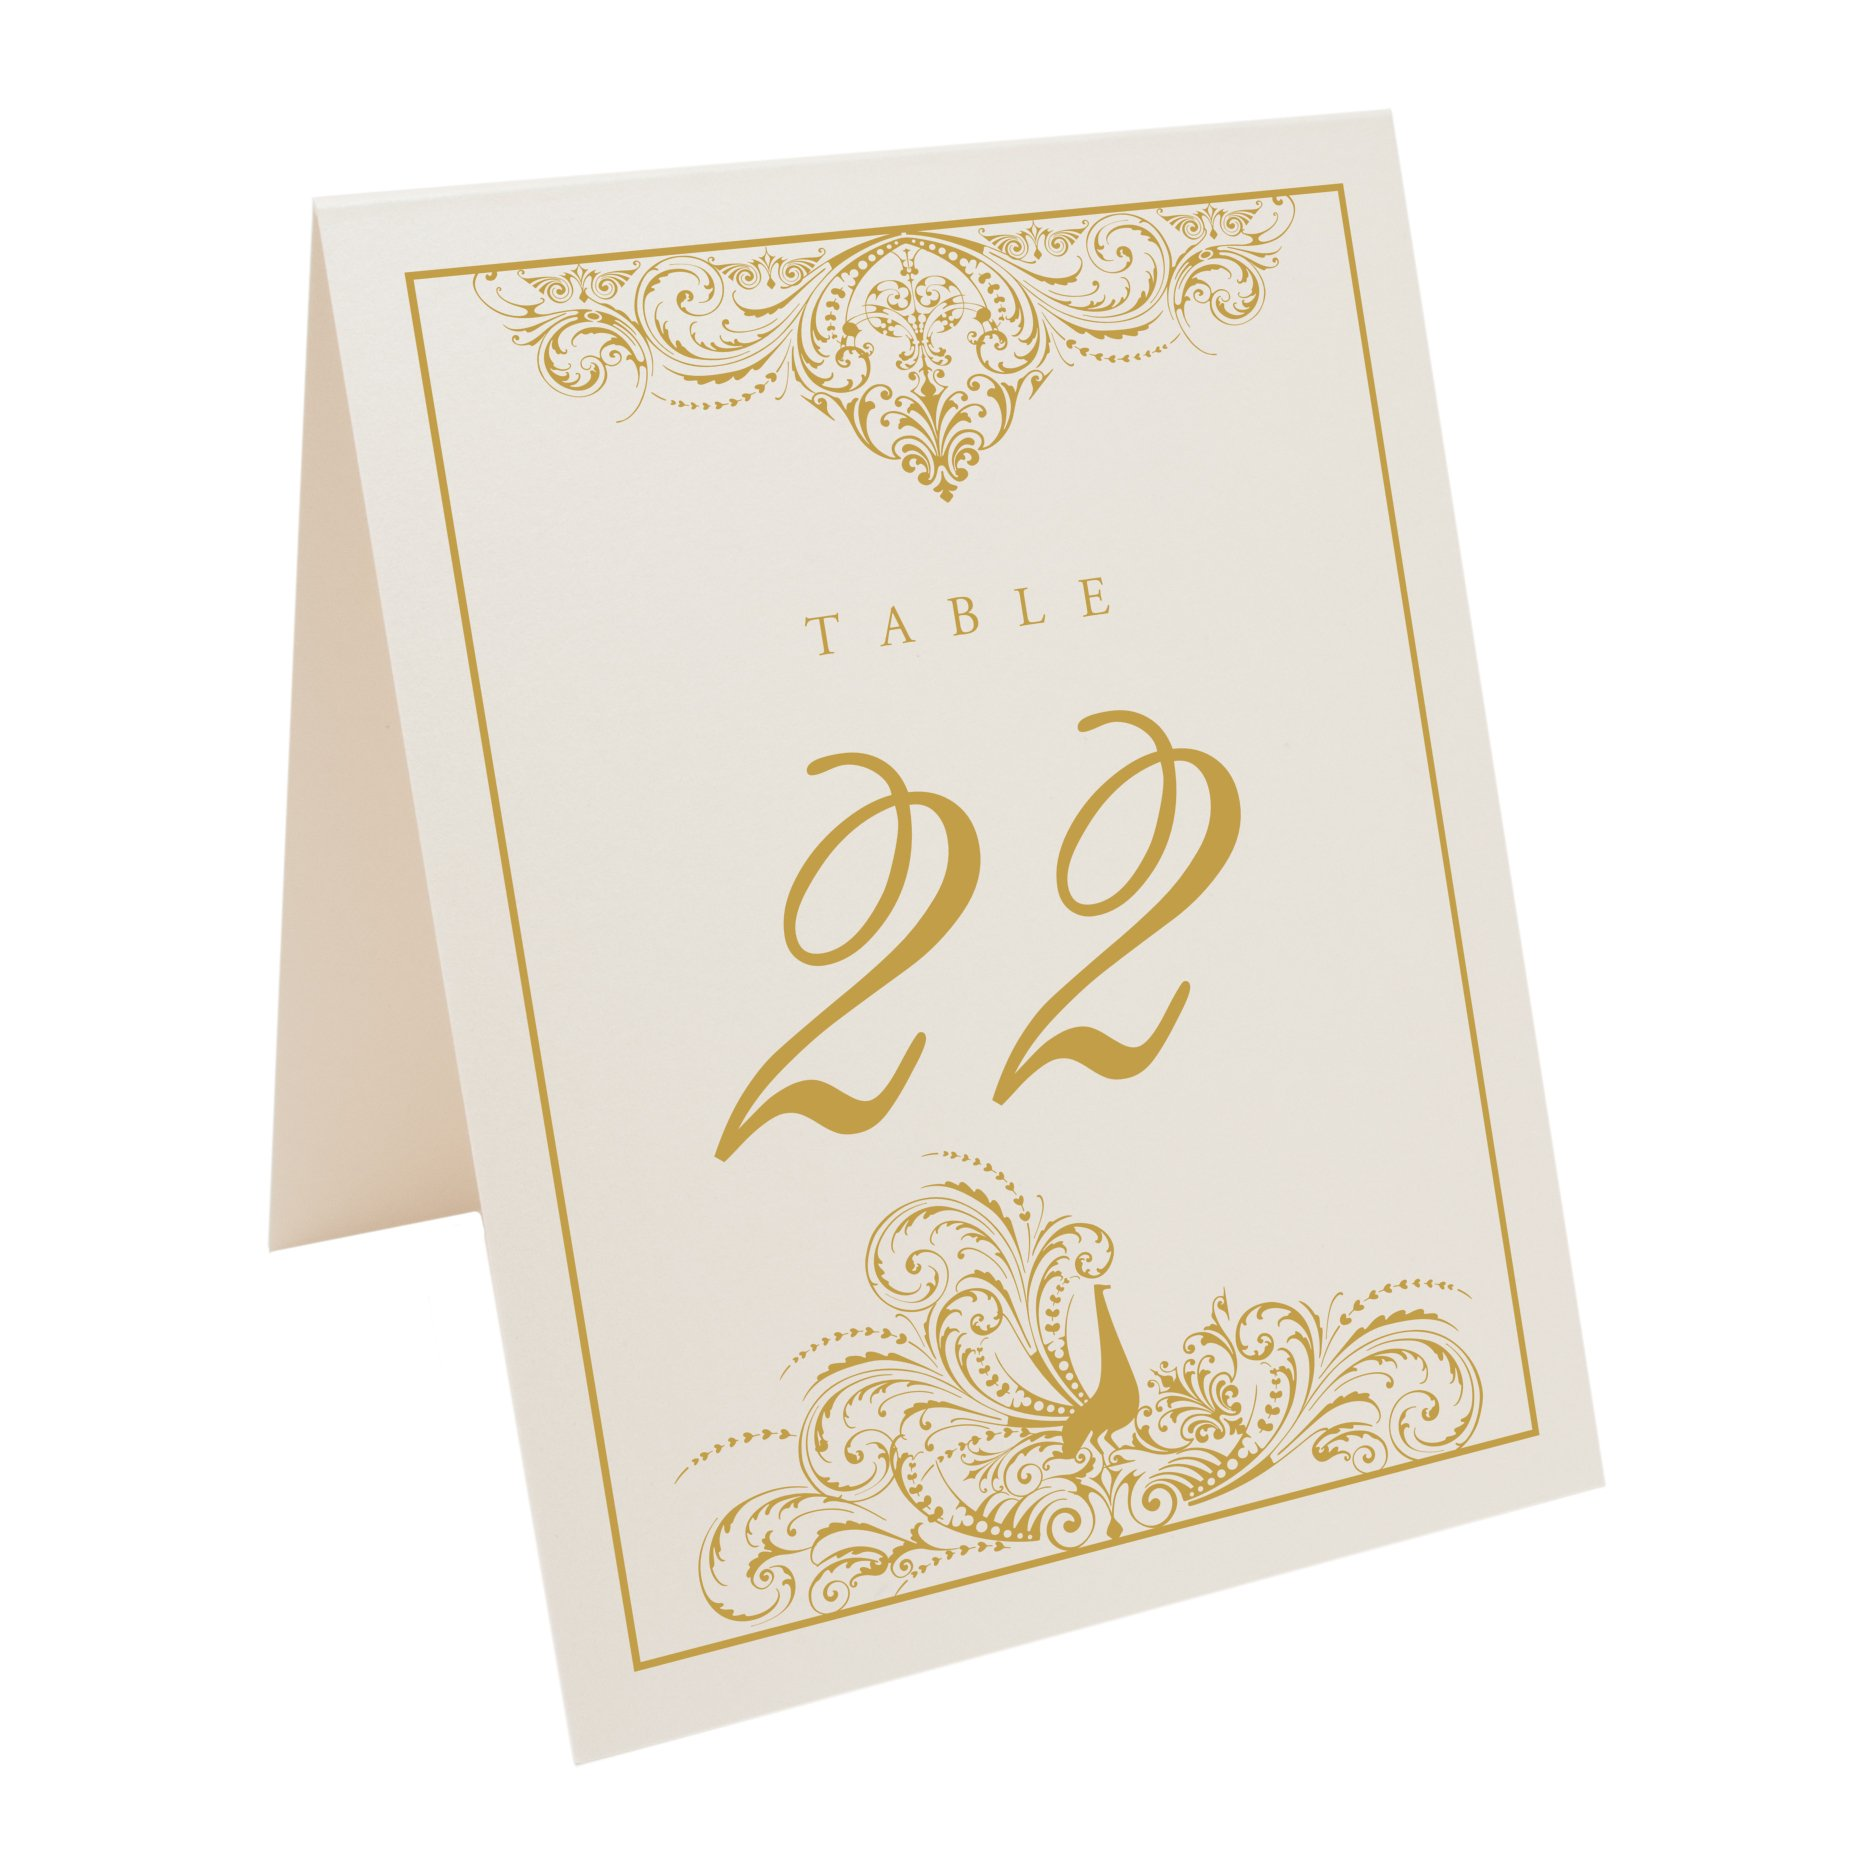 Documents and Designs Peacock Flourish Table Numbers (Select Color/Quantity), Champagne, Gold, 1-40